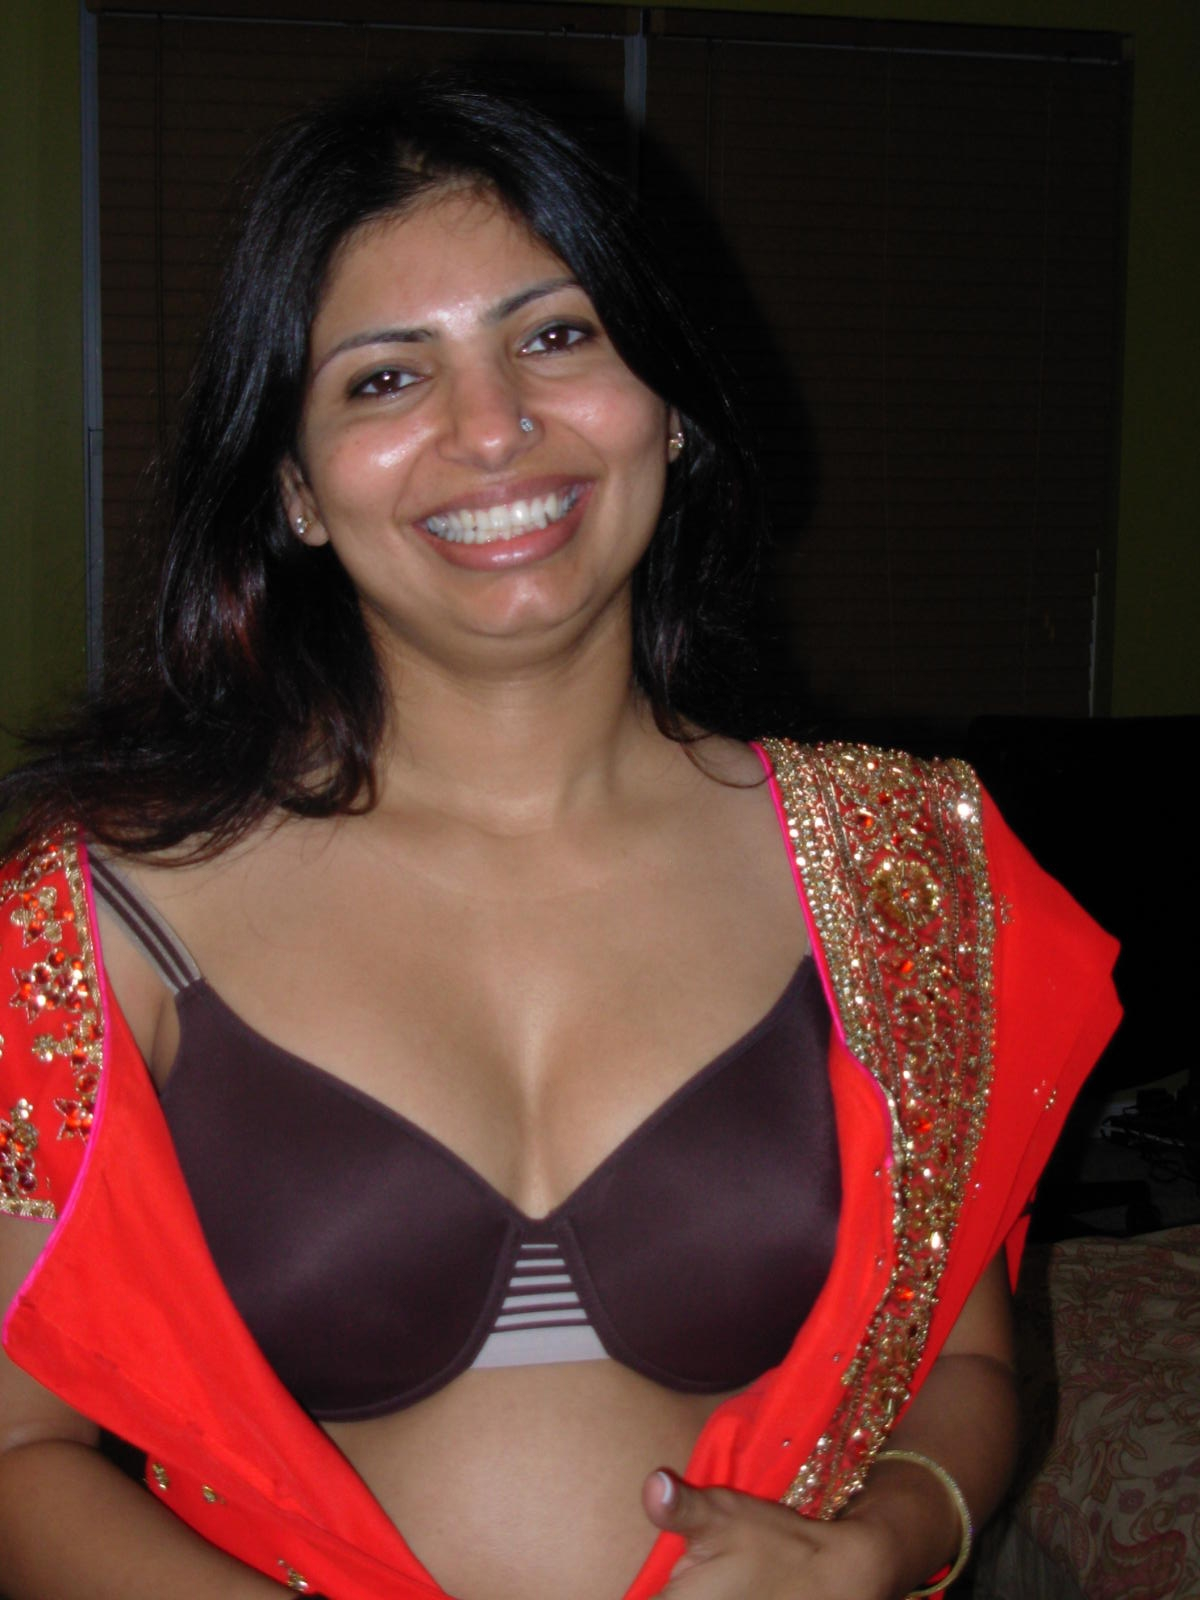 Can find Desi bikini girls really